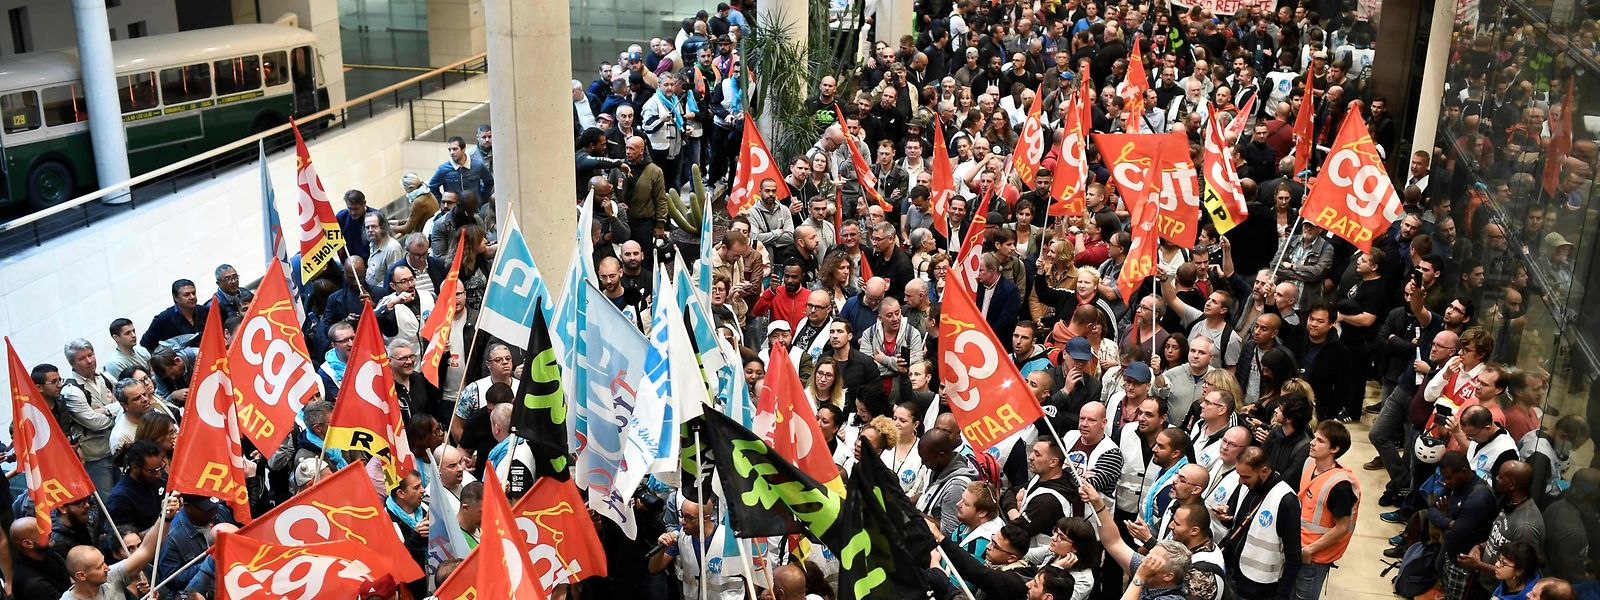 TOPSHOT - CGT Union members gather inside Paris public transports operator headquarters La Maison de la RATP in Paris on September 13, 2019 during a one-day strike of RATP employees over French government's plan to overhaul the country's retirement system. (Photo by STEPHANE DE SAKUTIN / AFP)